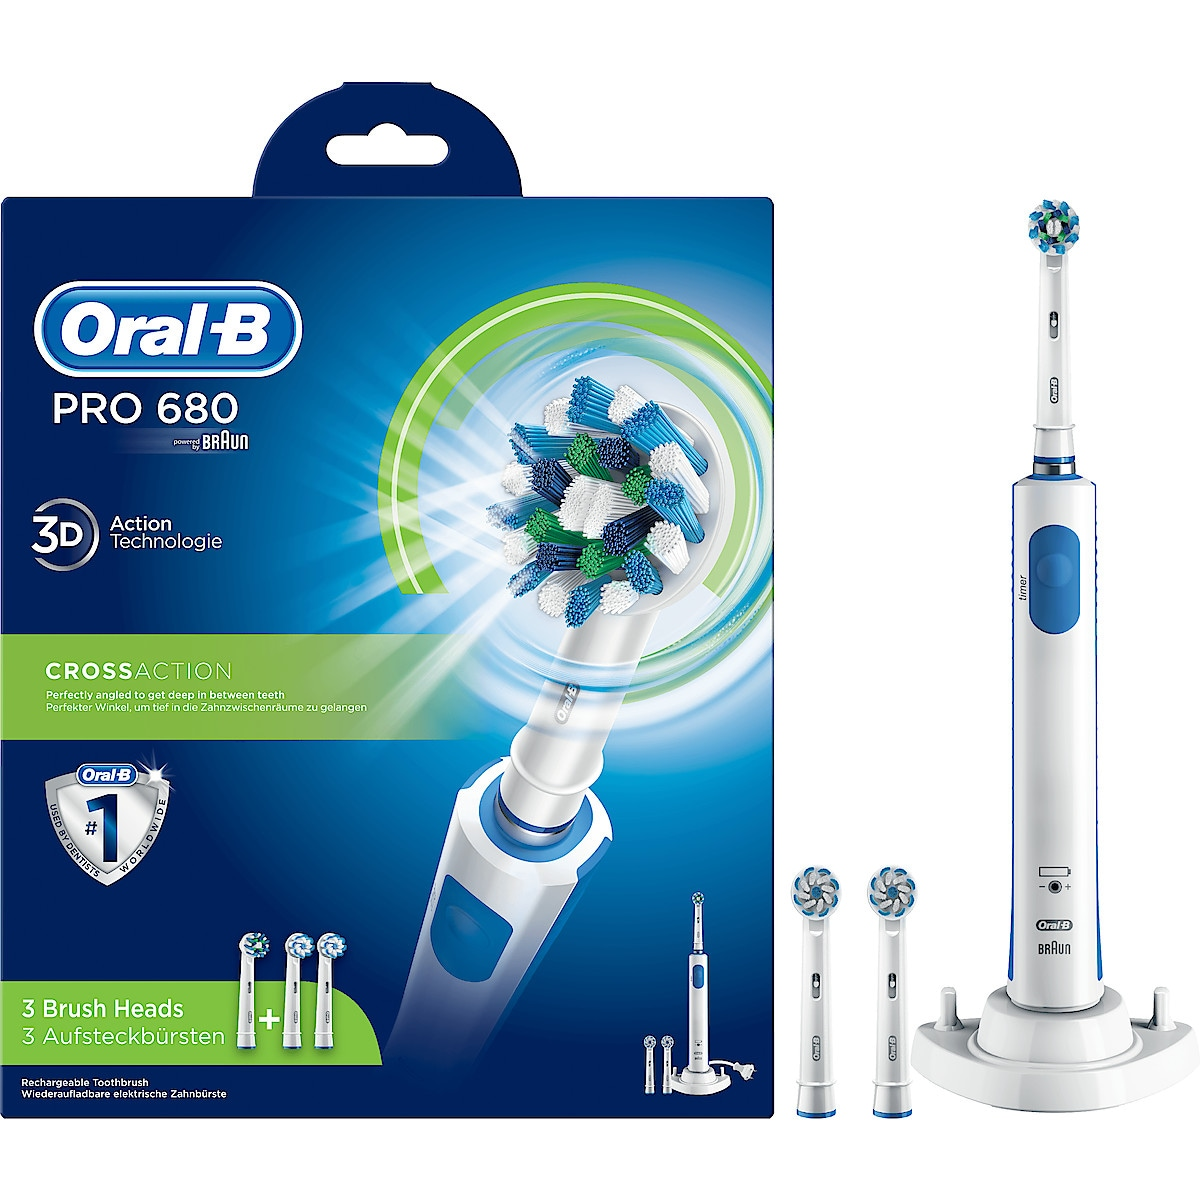 Sähköhammasharja Oral-B PRO 680 Cross Action